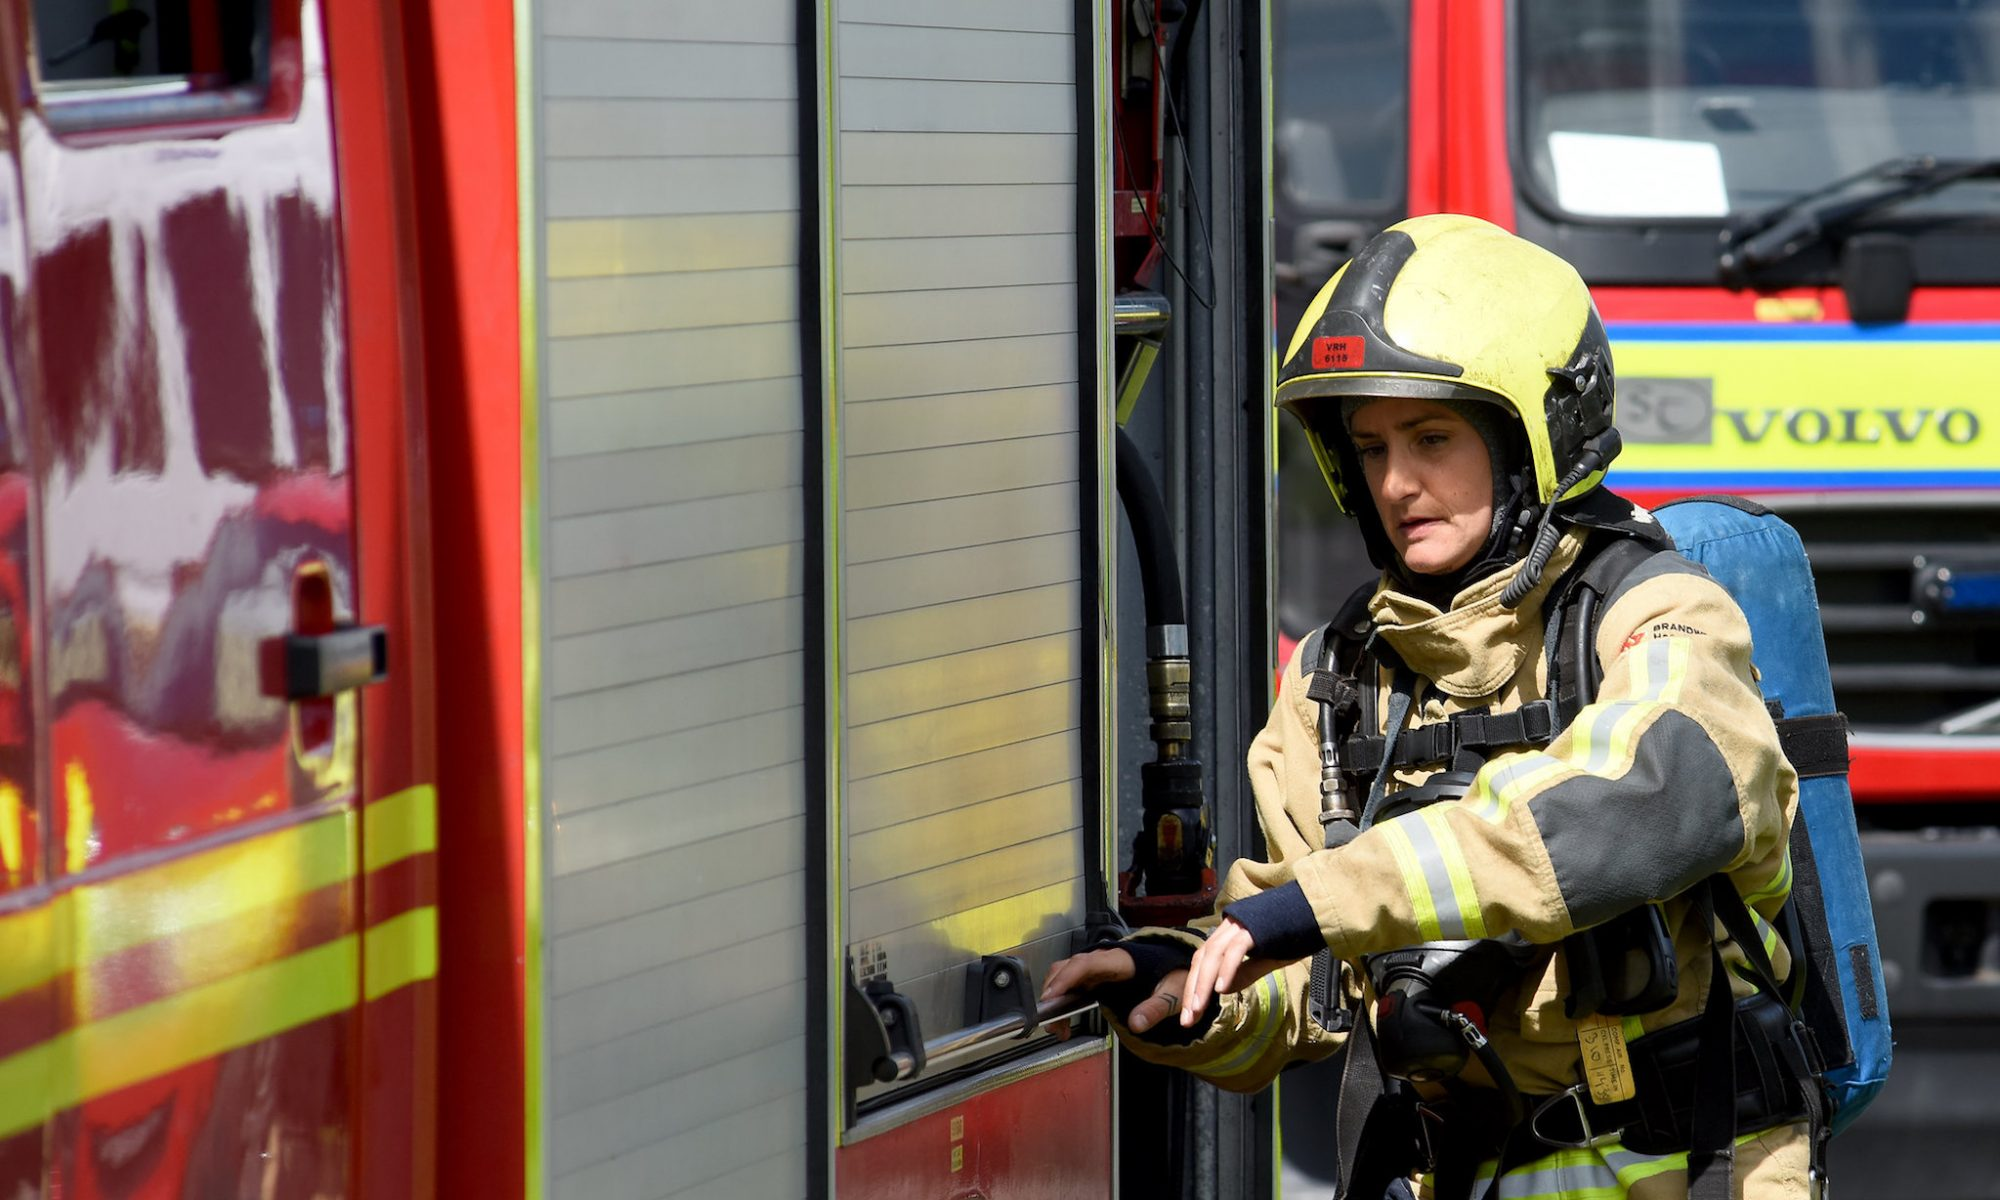 Firefighter opening a fire appliance compartment